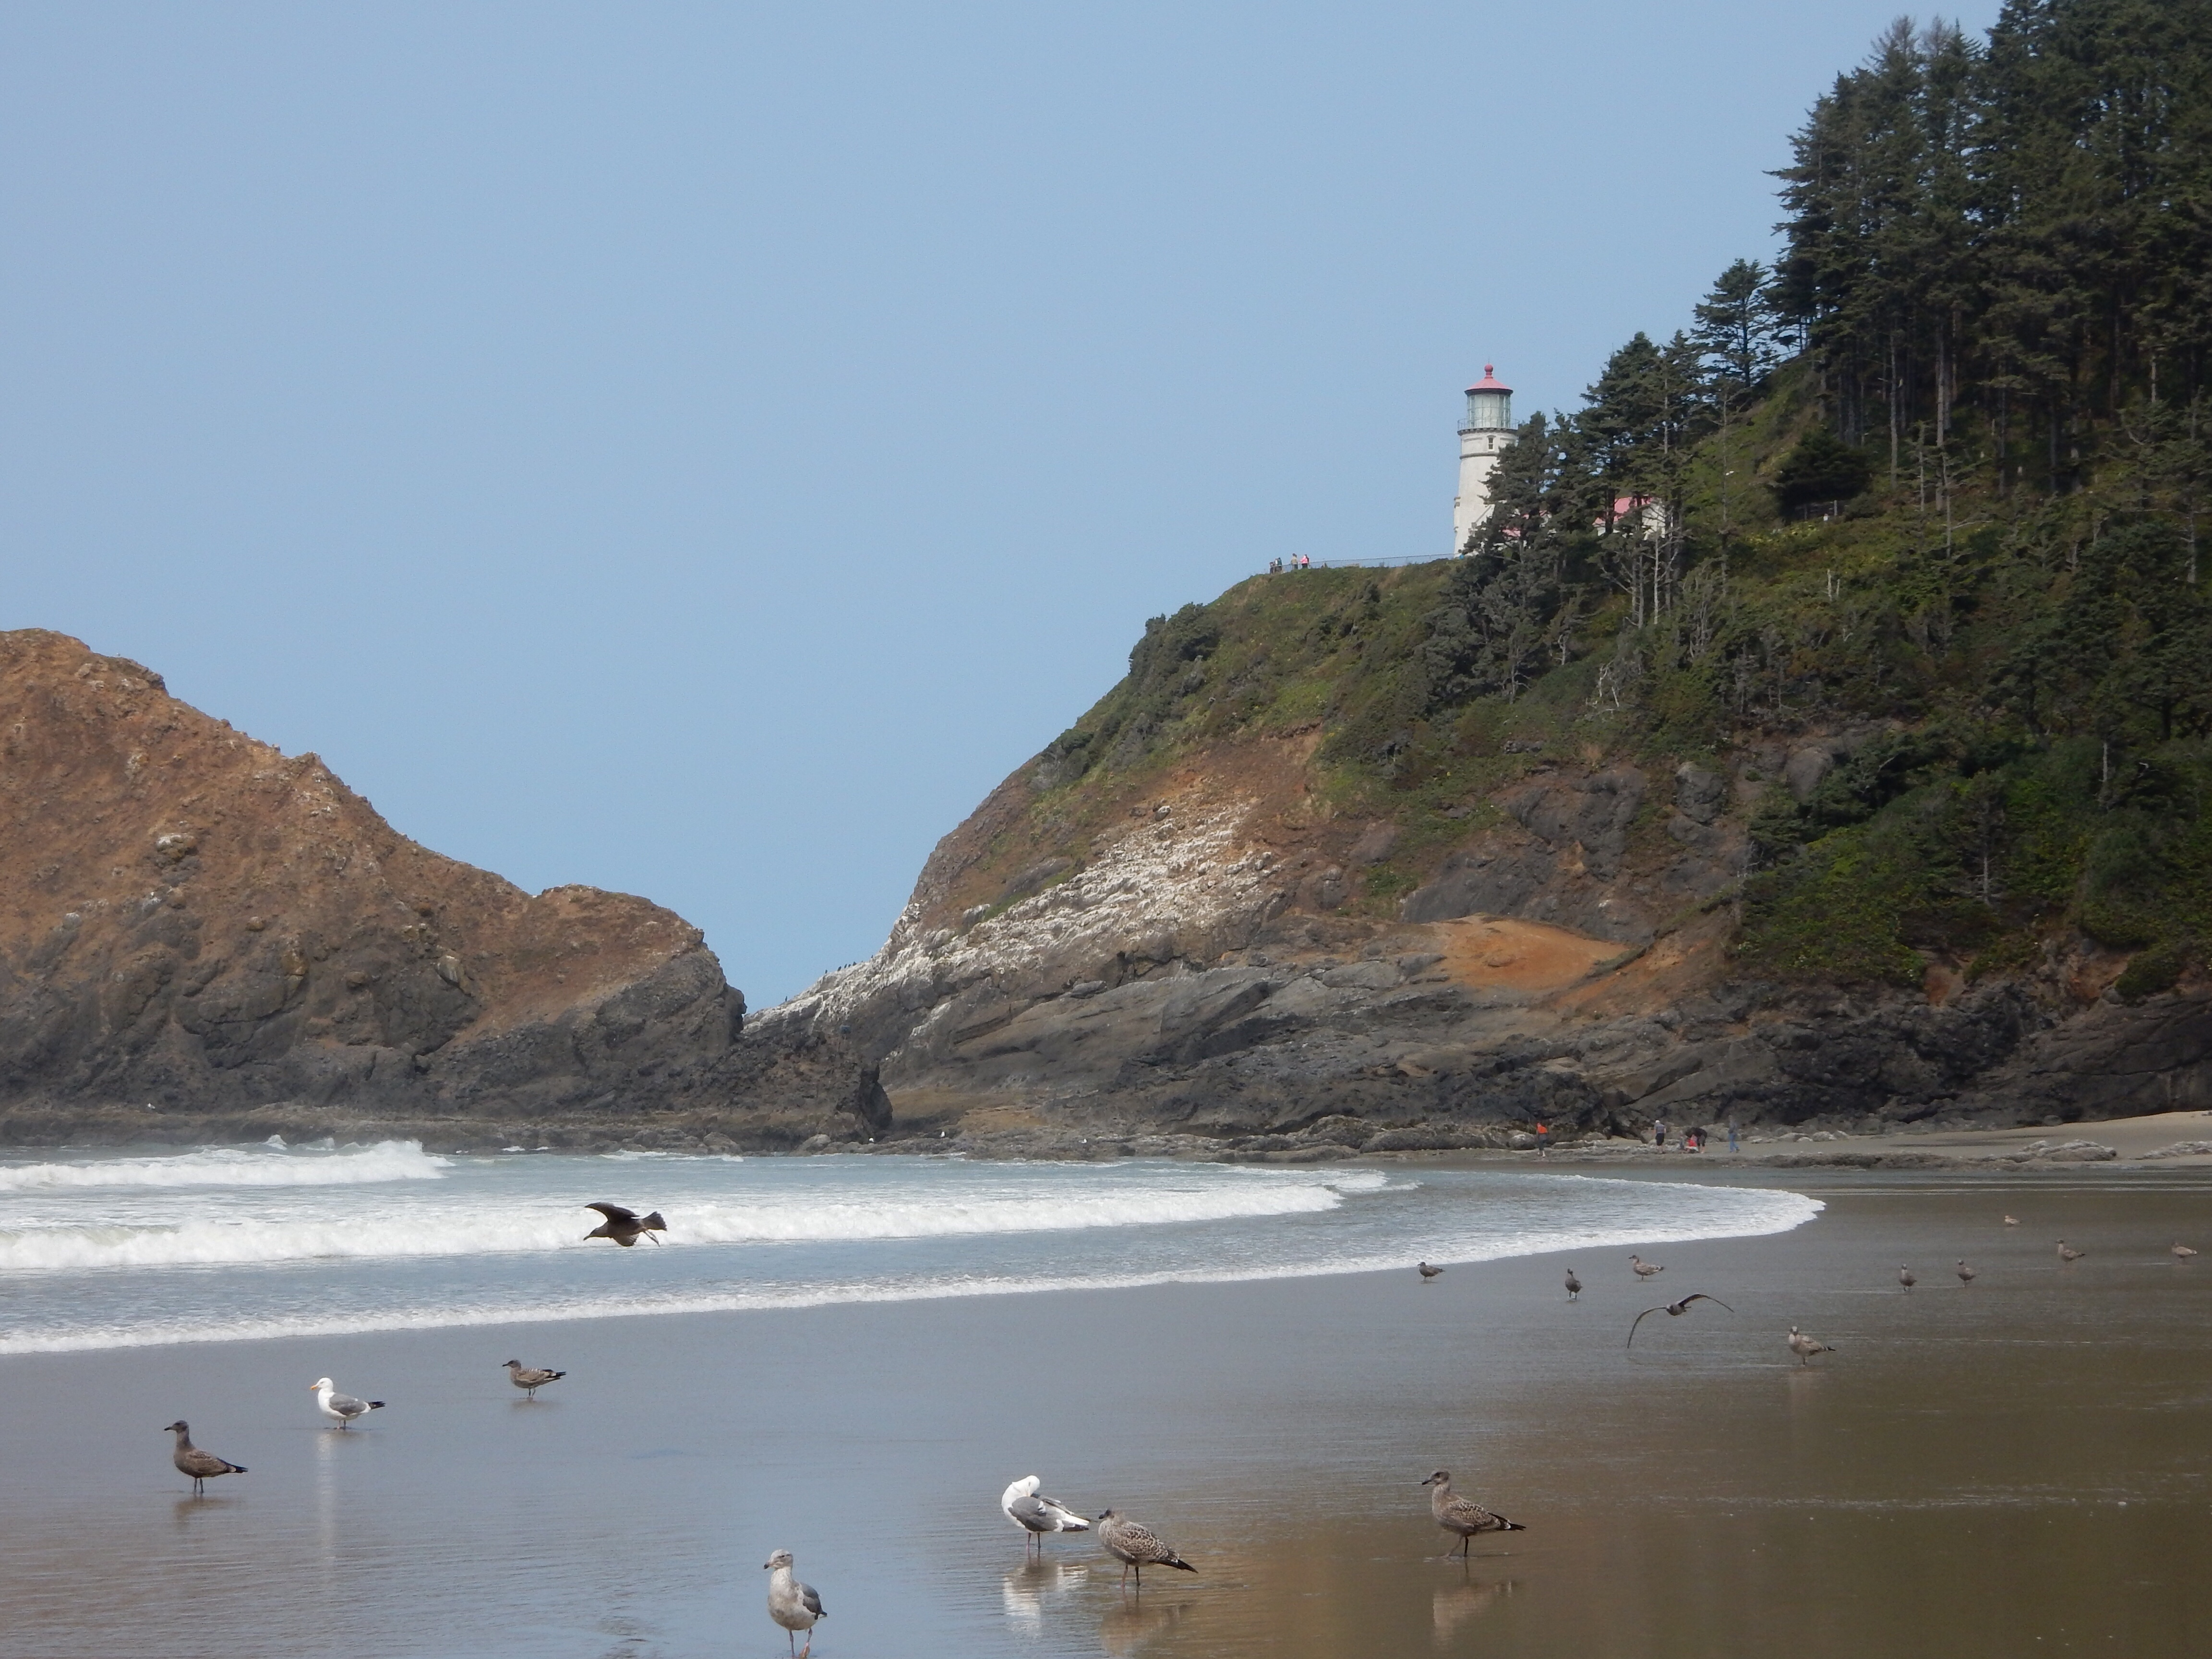 A view of the Heceta Head lighthouse from the nearby beach.